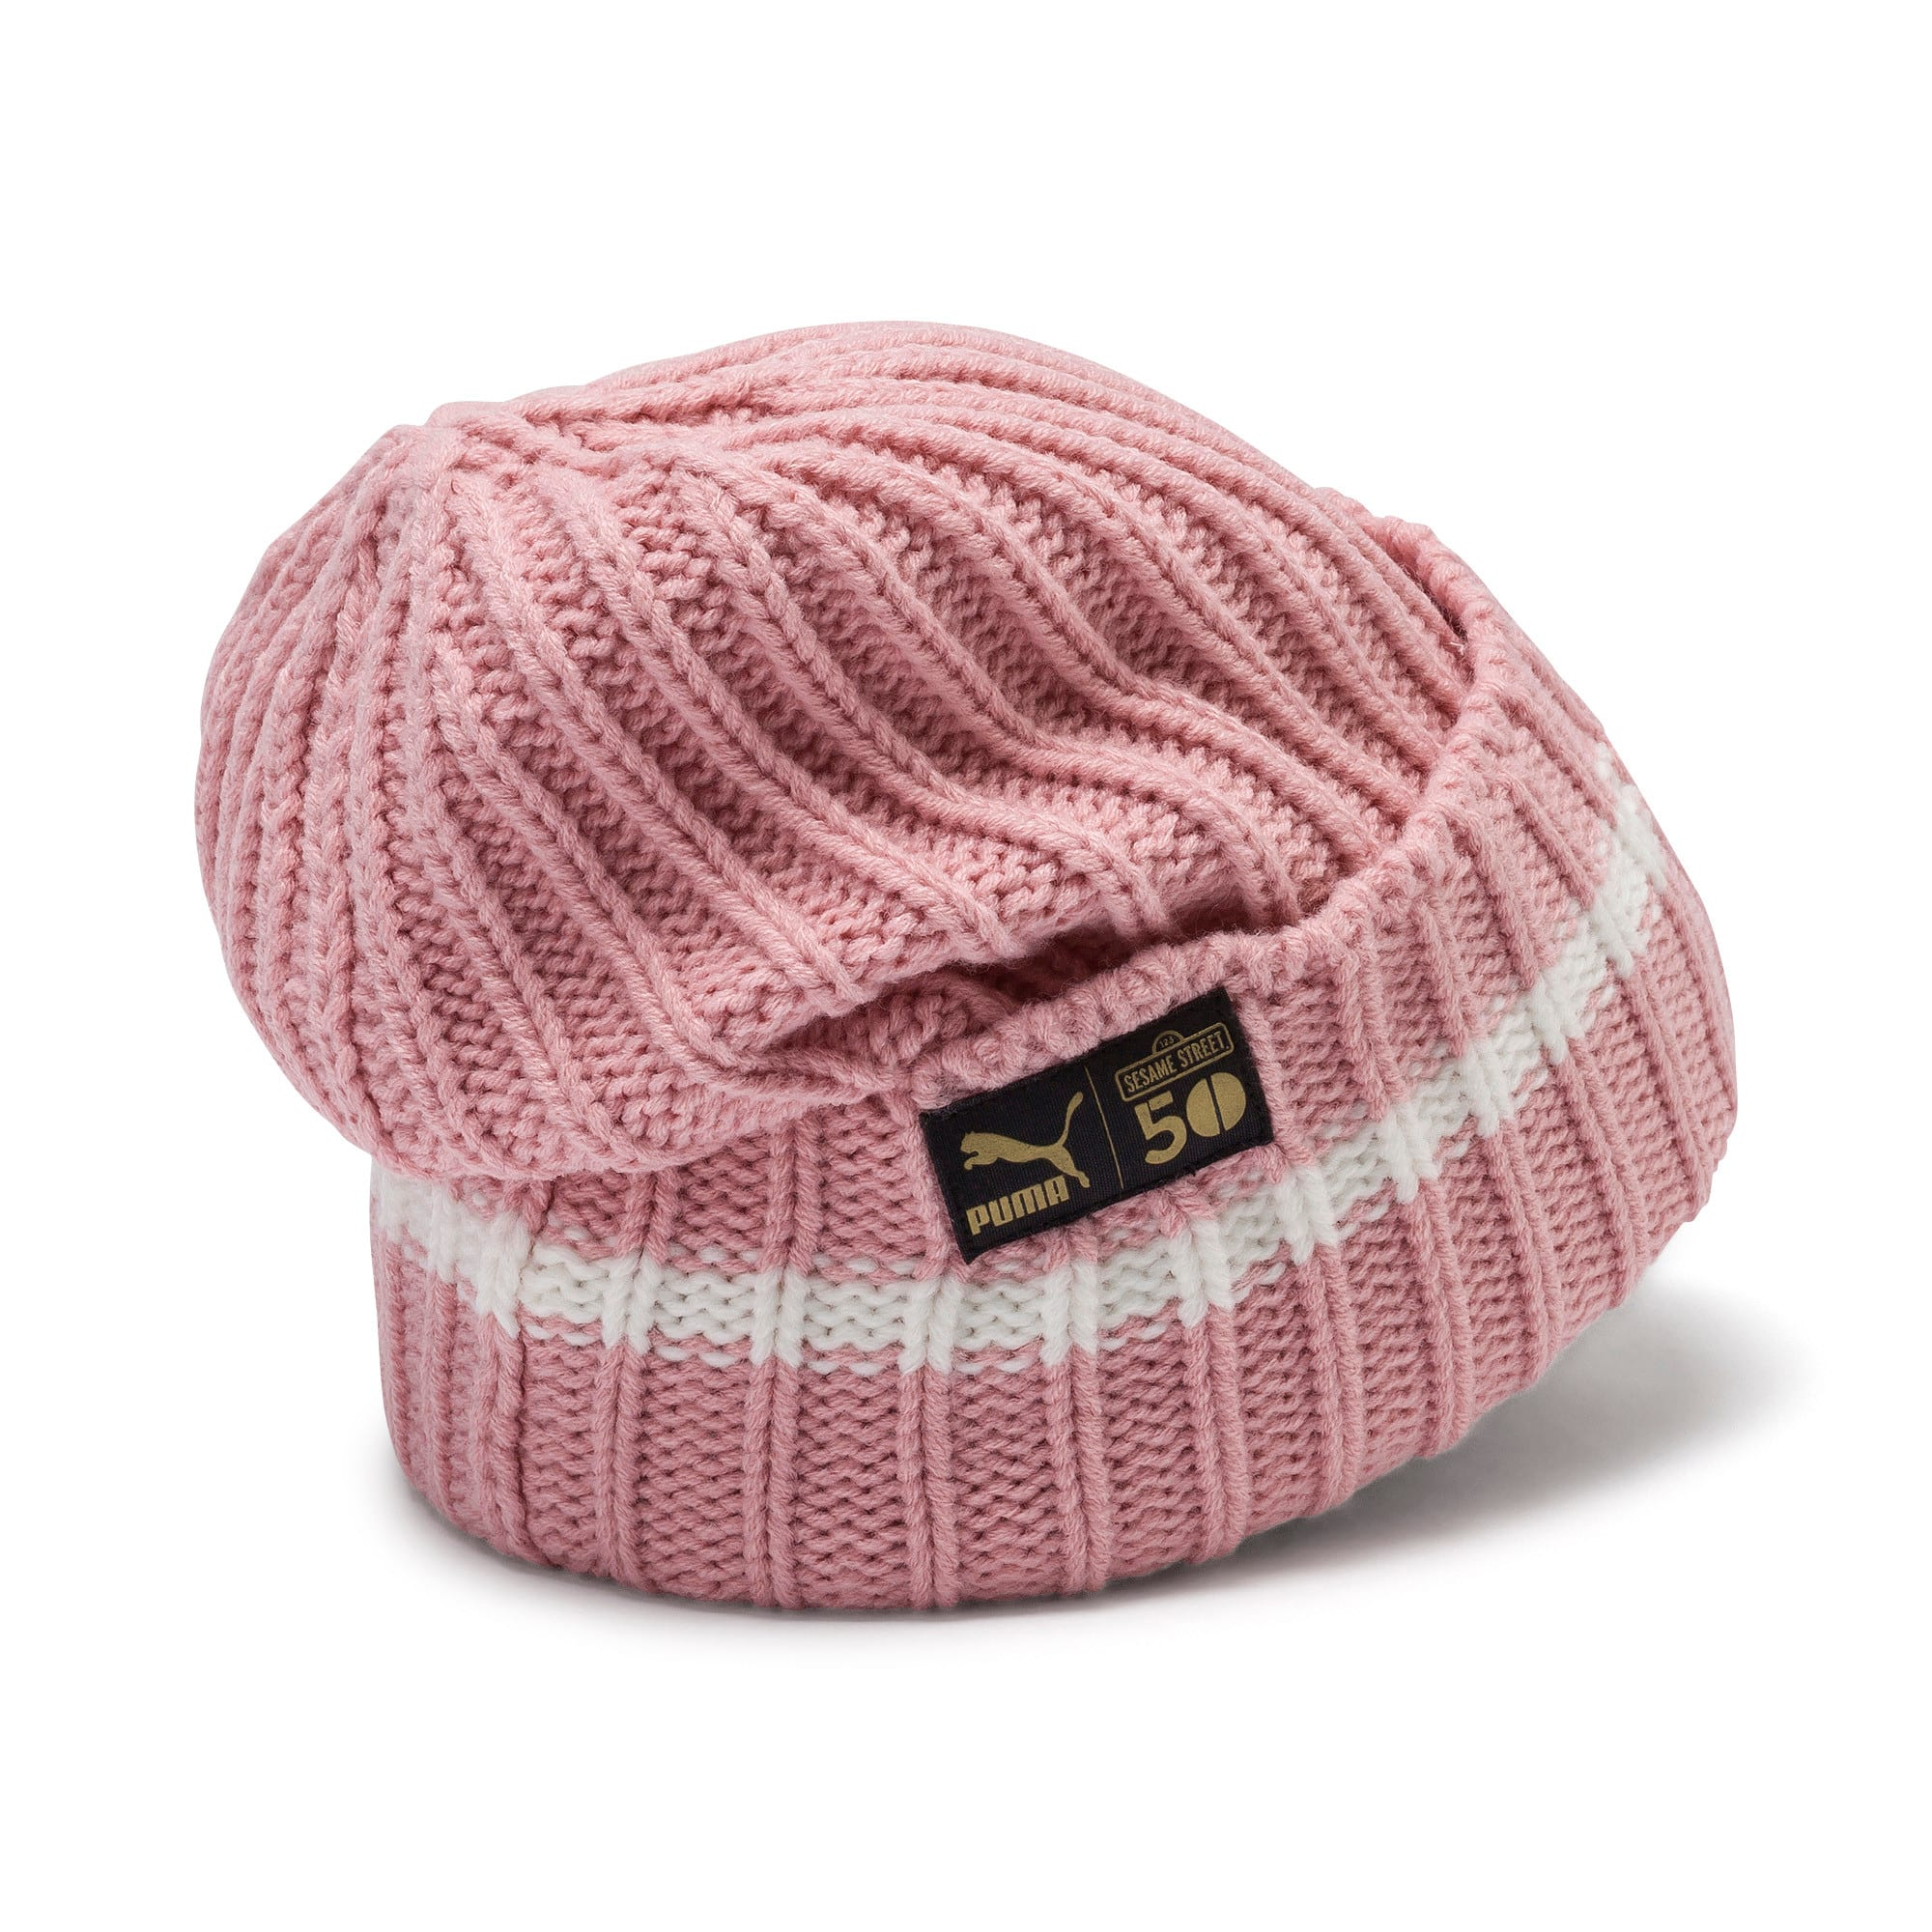 Thumbnail 2 of PUMA x SESAME STREET Kids' Beanie, Bridal Rose, medium